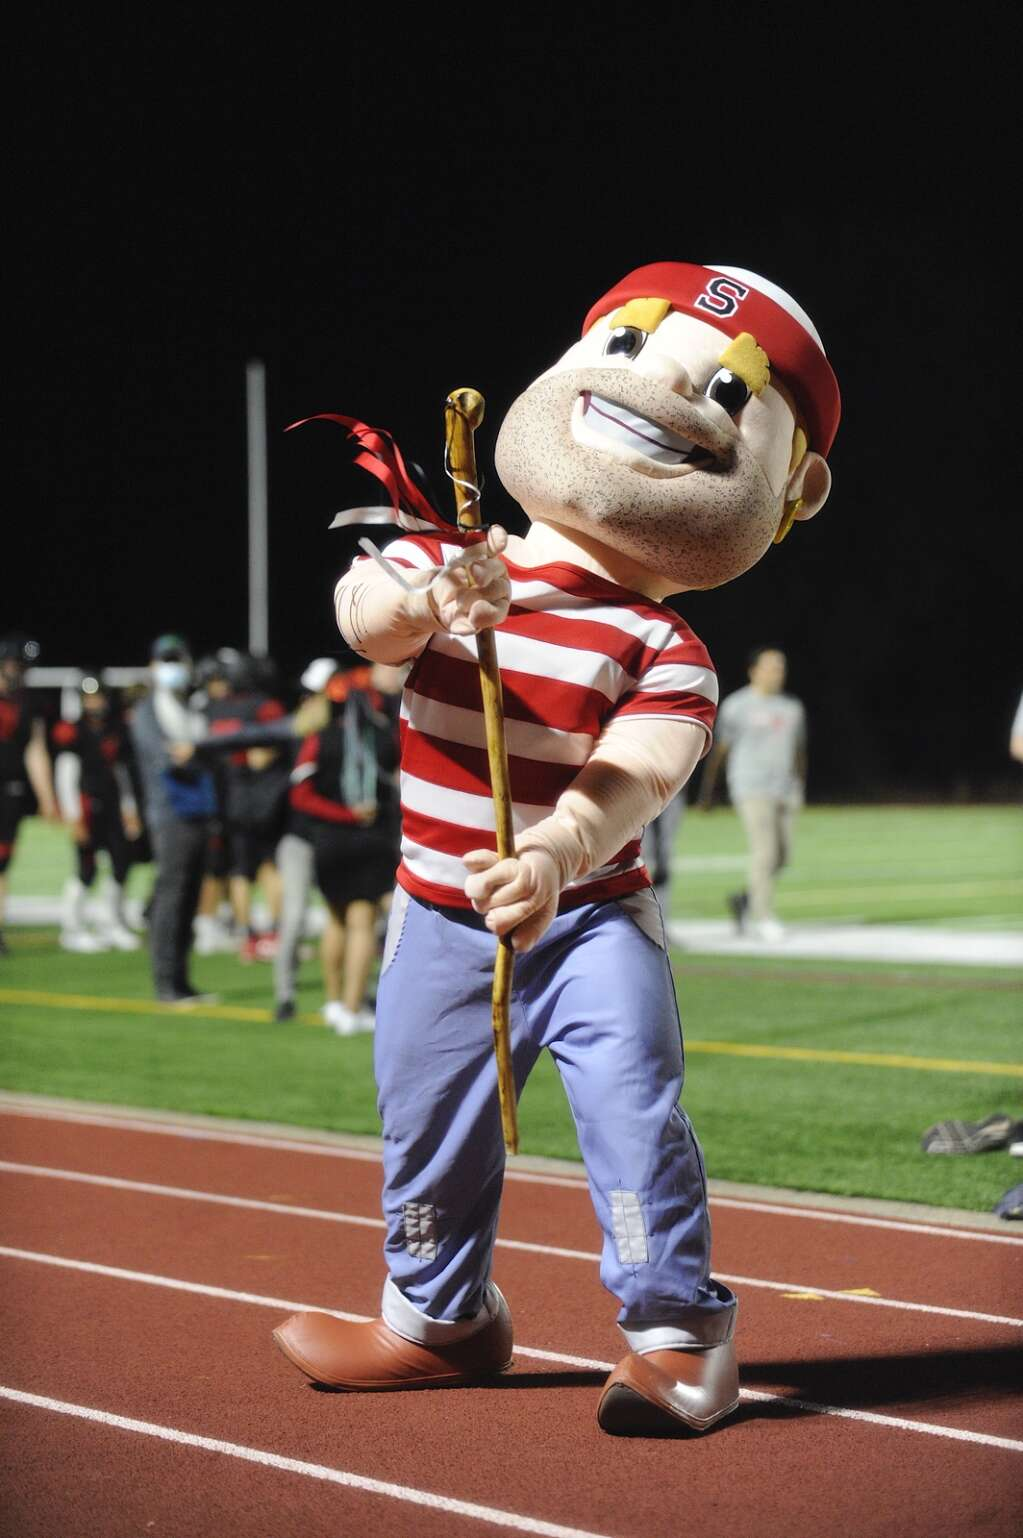 The Steamboat Springs mascot dances with the crowd during a home football game against Middle Park on Friday night at Gardner Field.   Shelby Reardon/Steamboat Pilot & Today